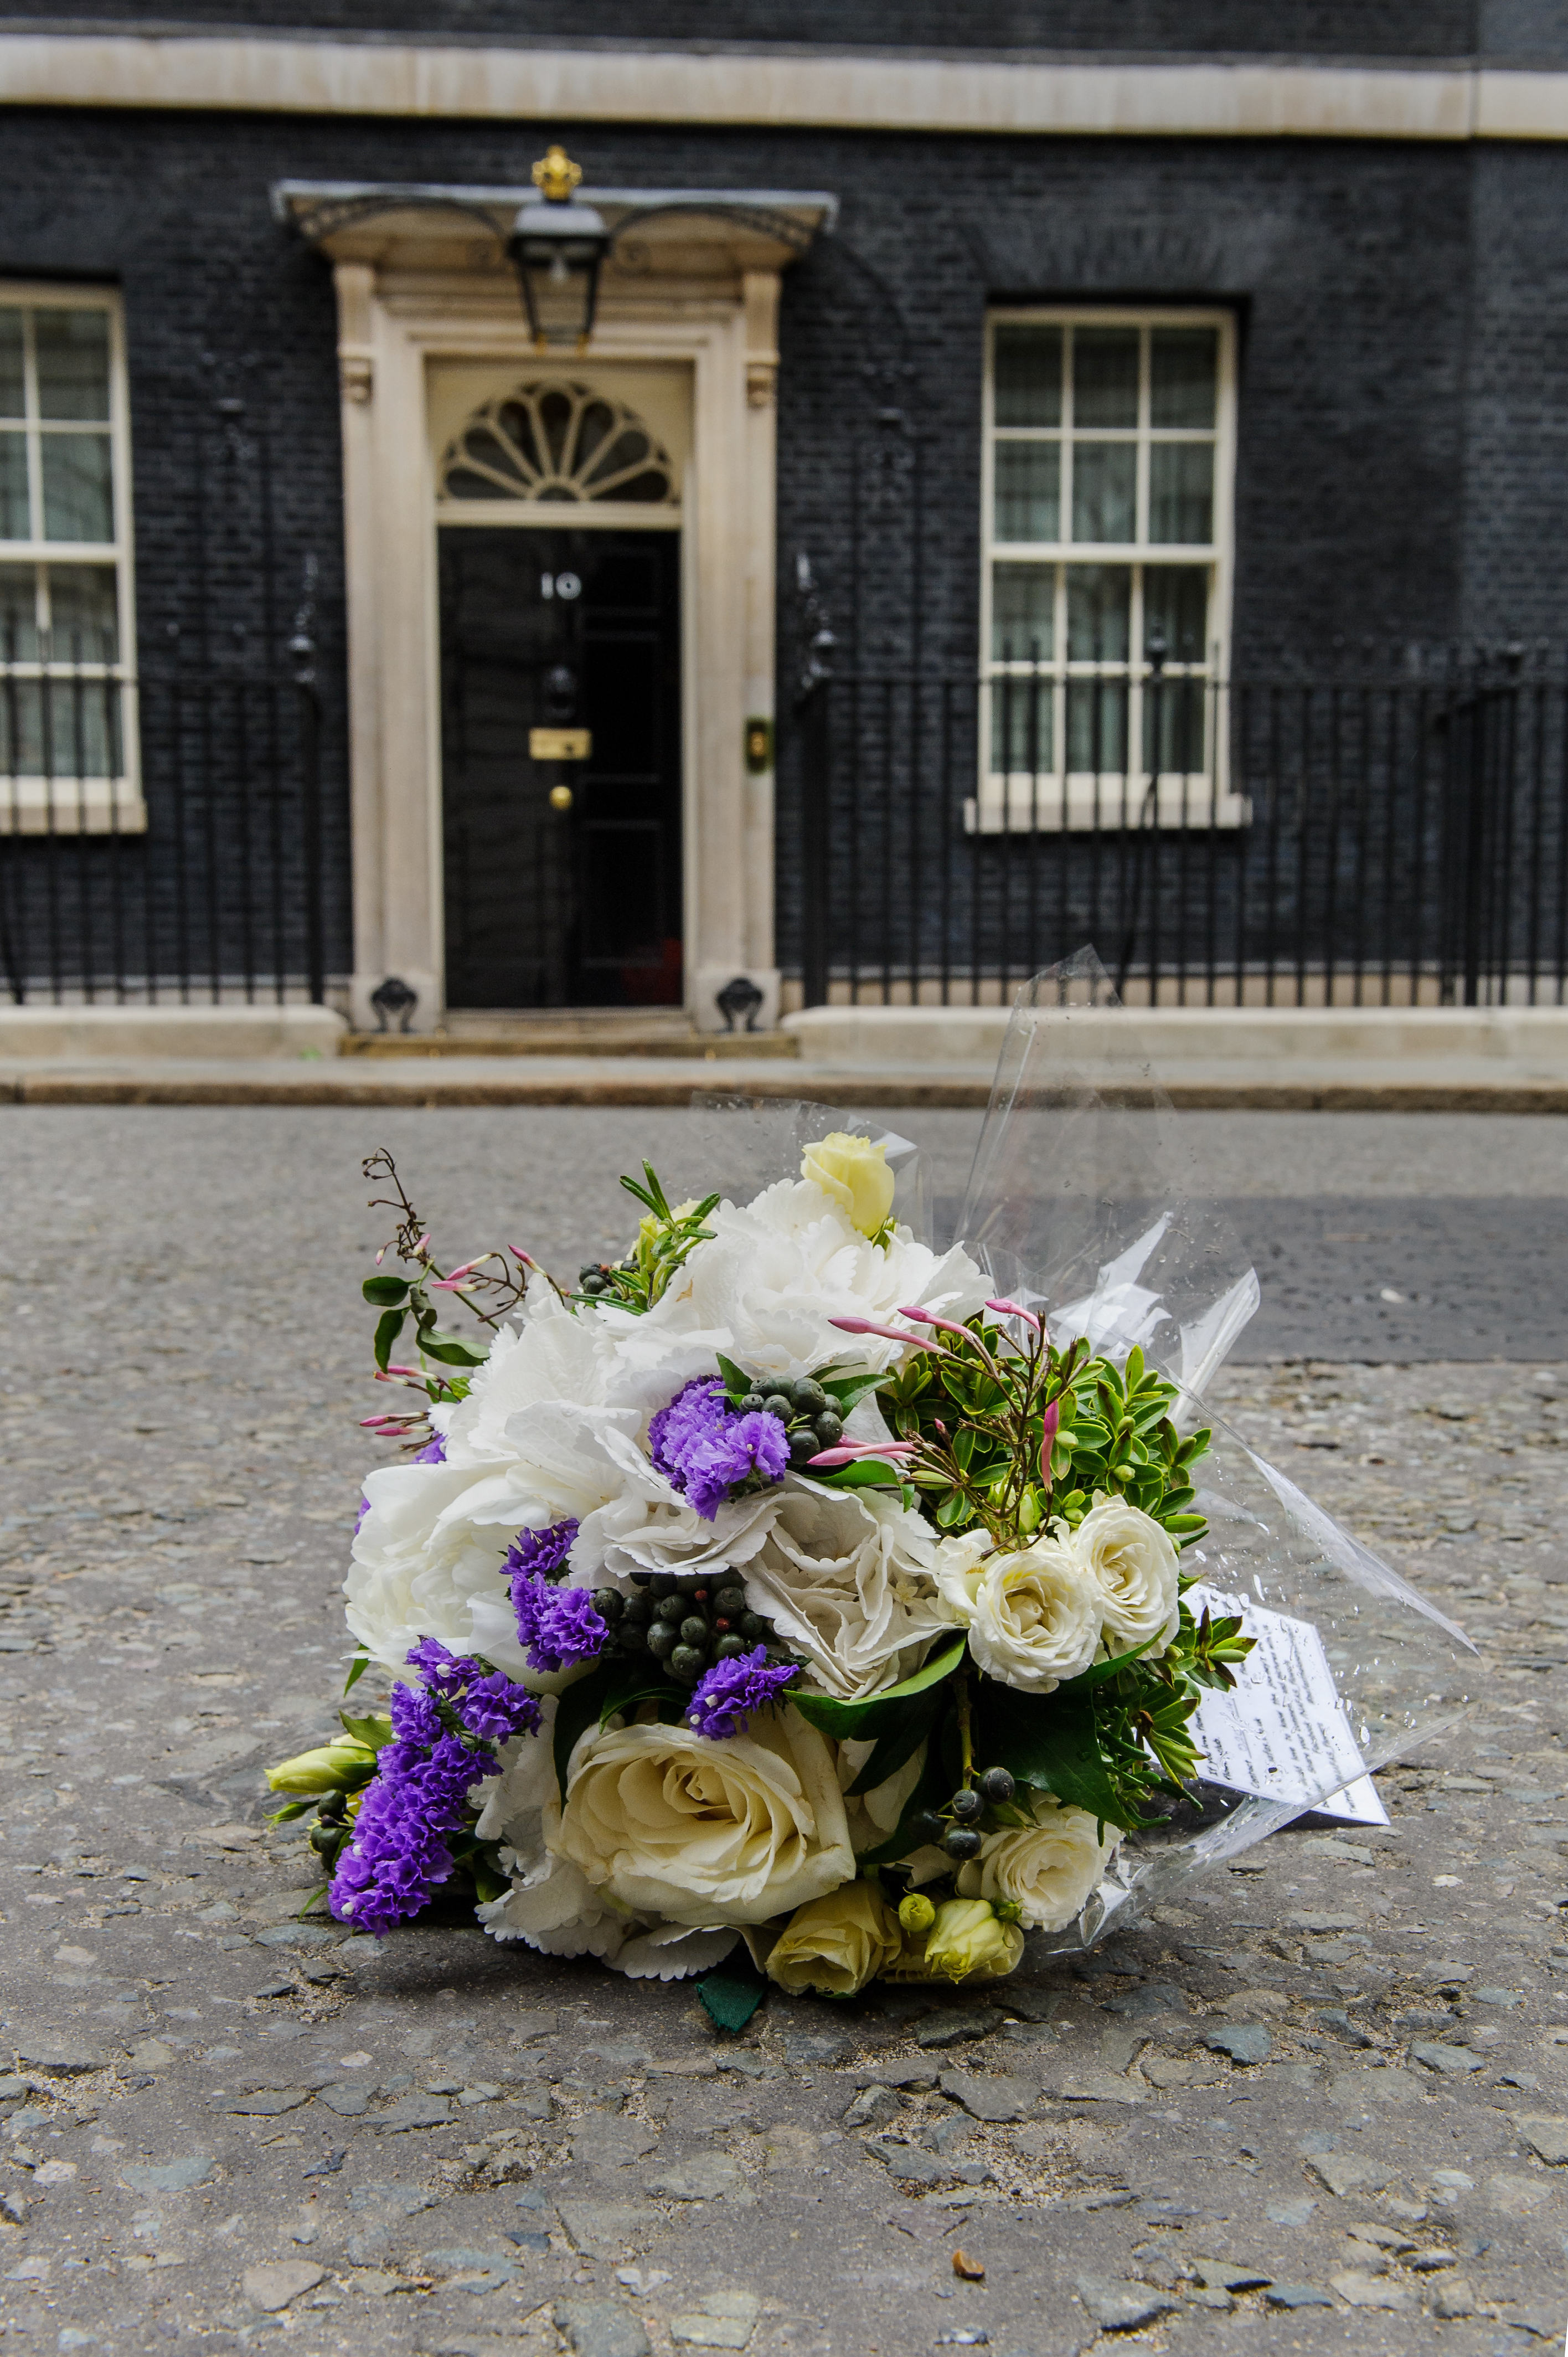 CHARITY TO DISTRIBUTE 60,000 \'LONELY BOUQUETS\' ON NATIONAL FLOWER ...